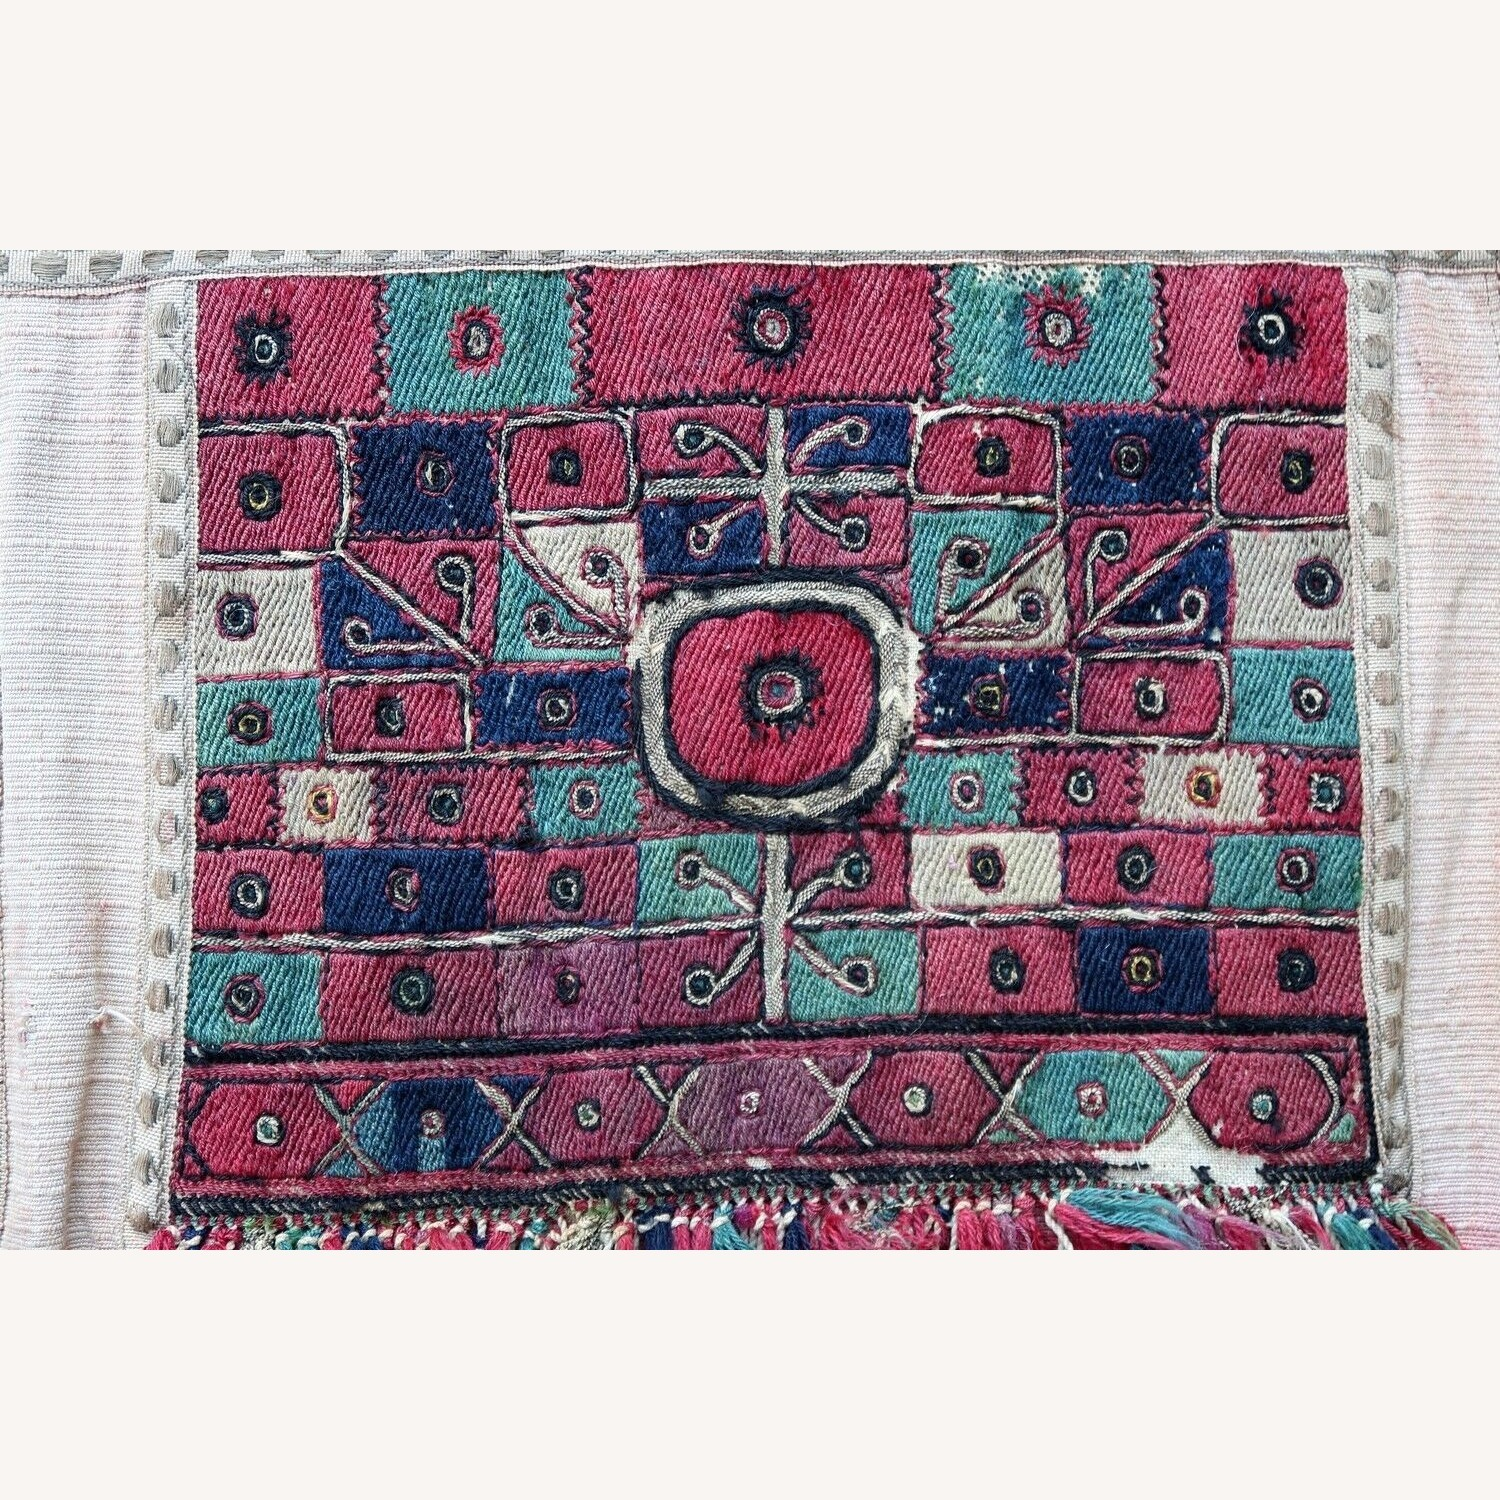 Handmade antique Greek embroidery, 1P87 - image-1